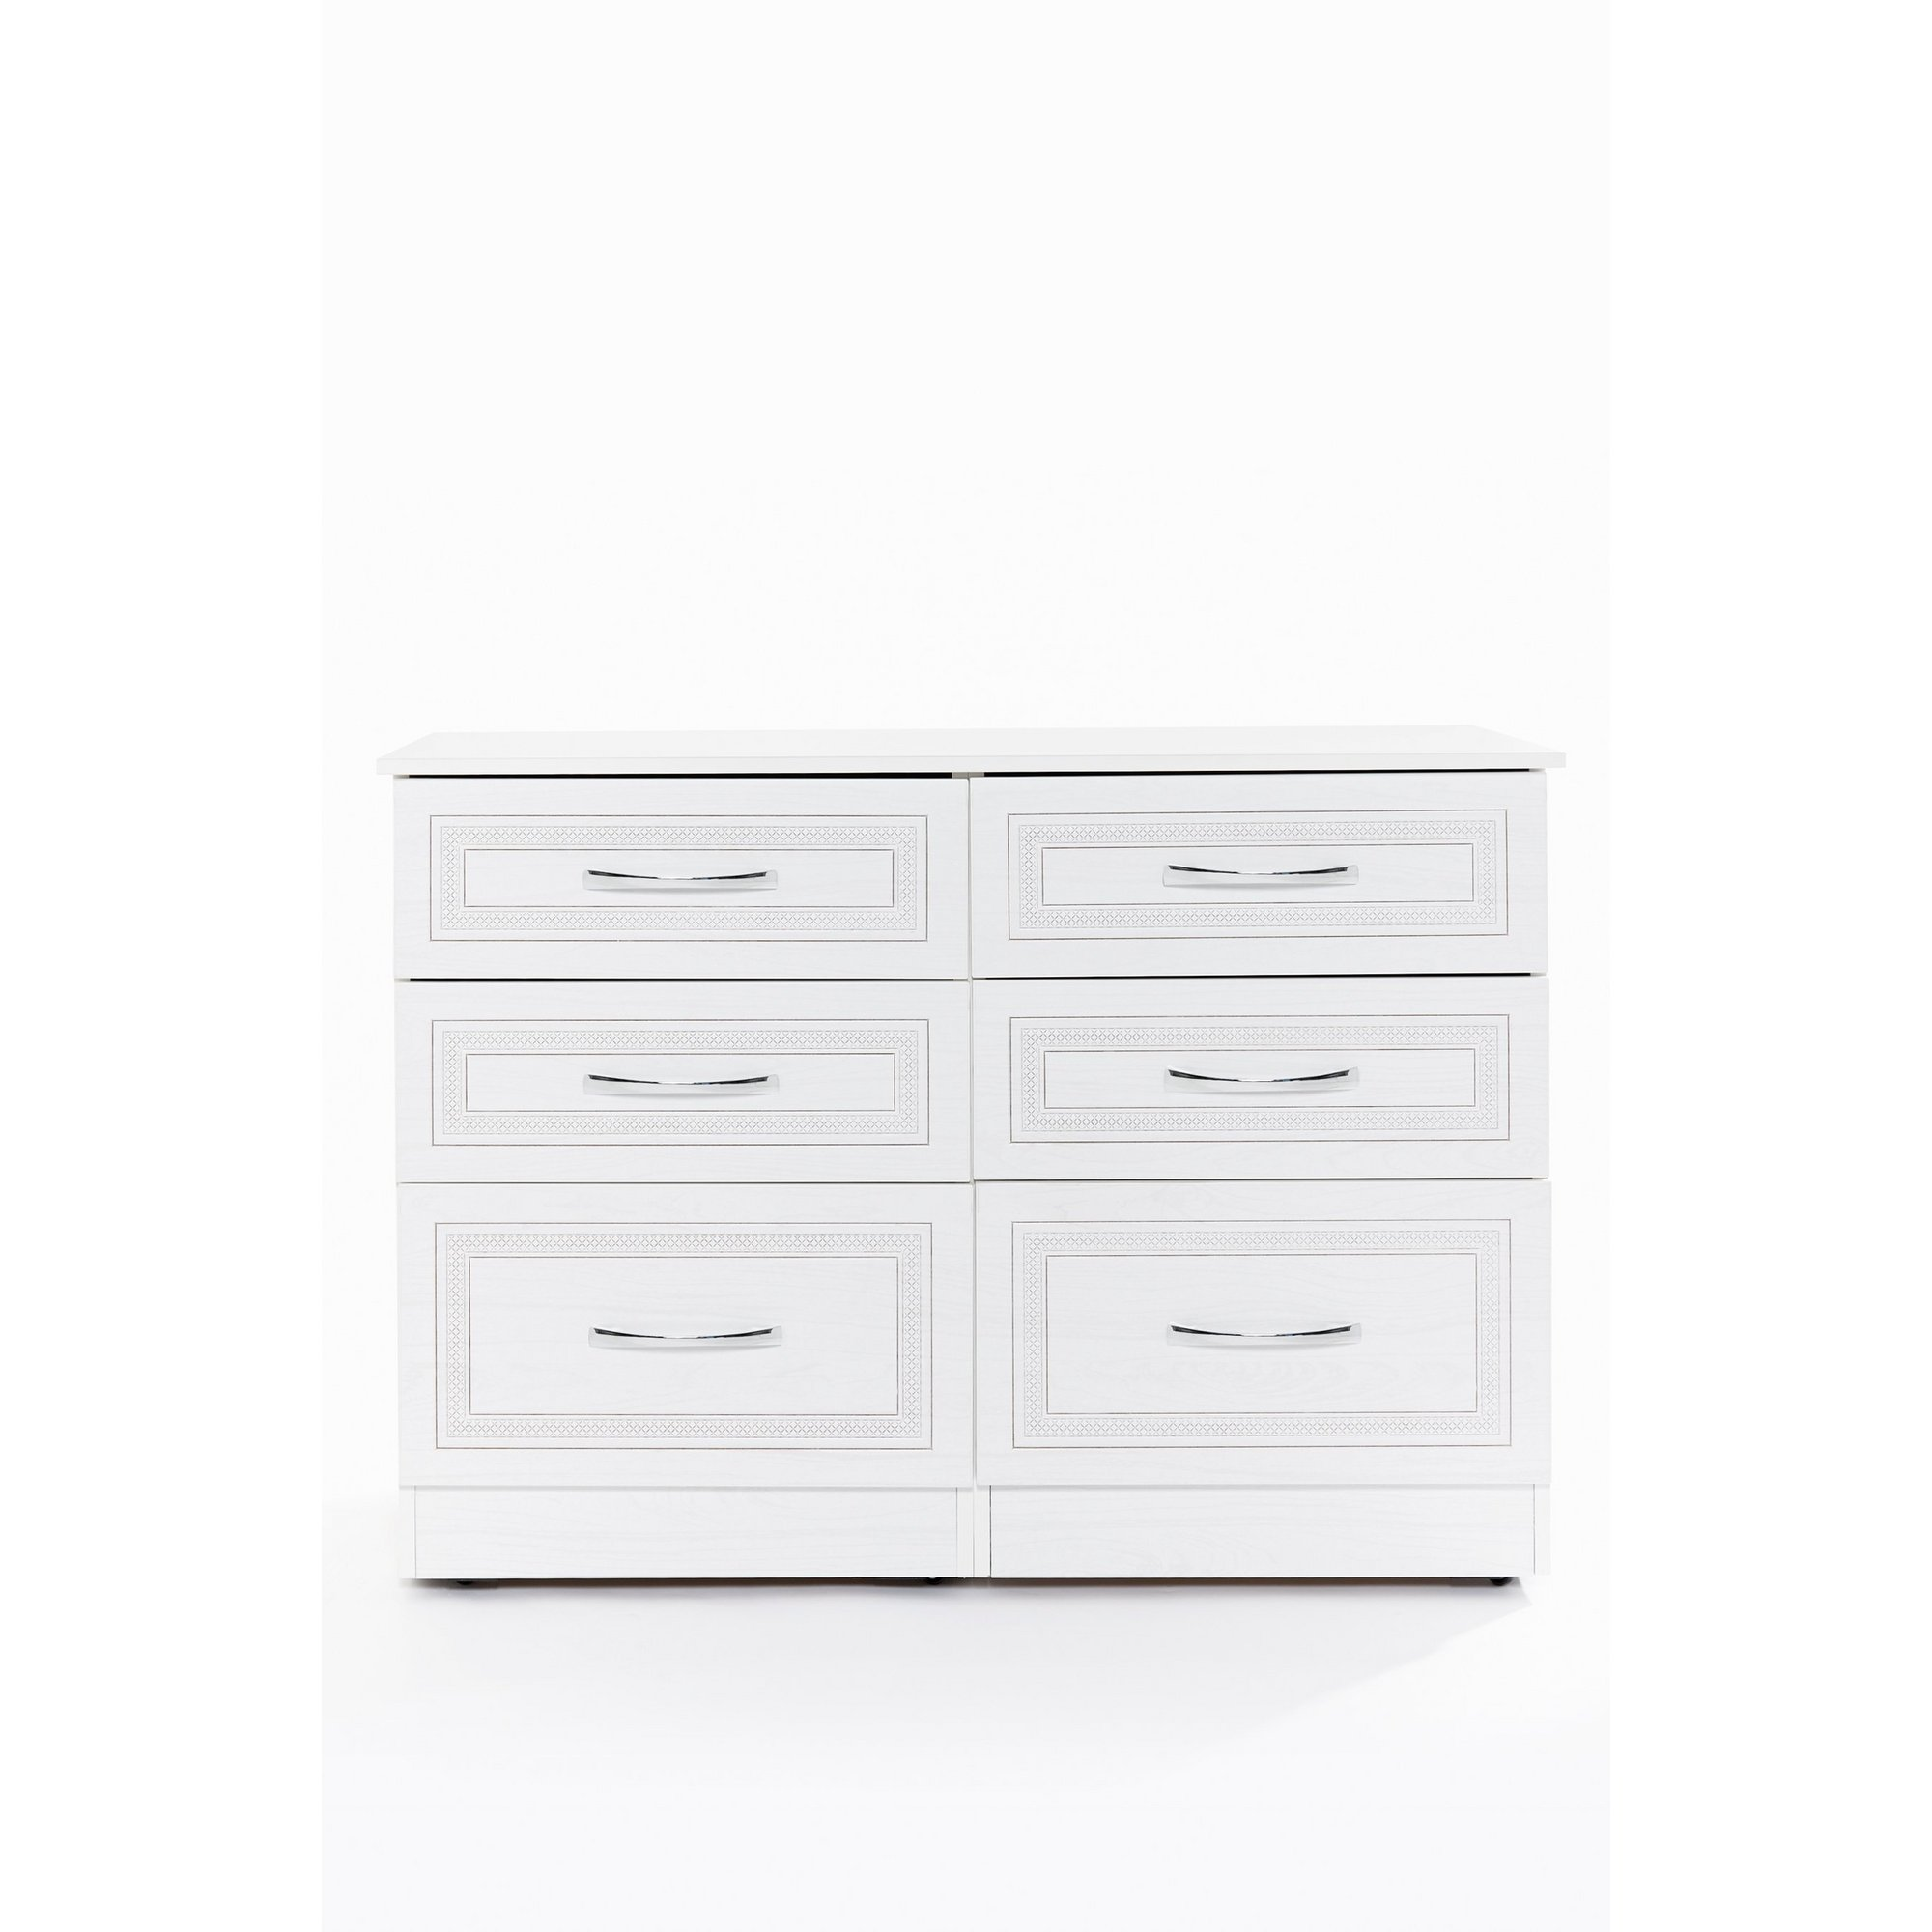 Image of Dorset 6 Drawer Chest of Drawers - Ready Assembled